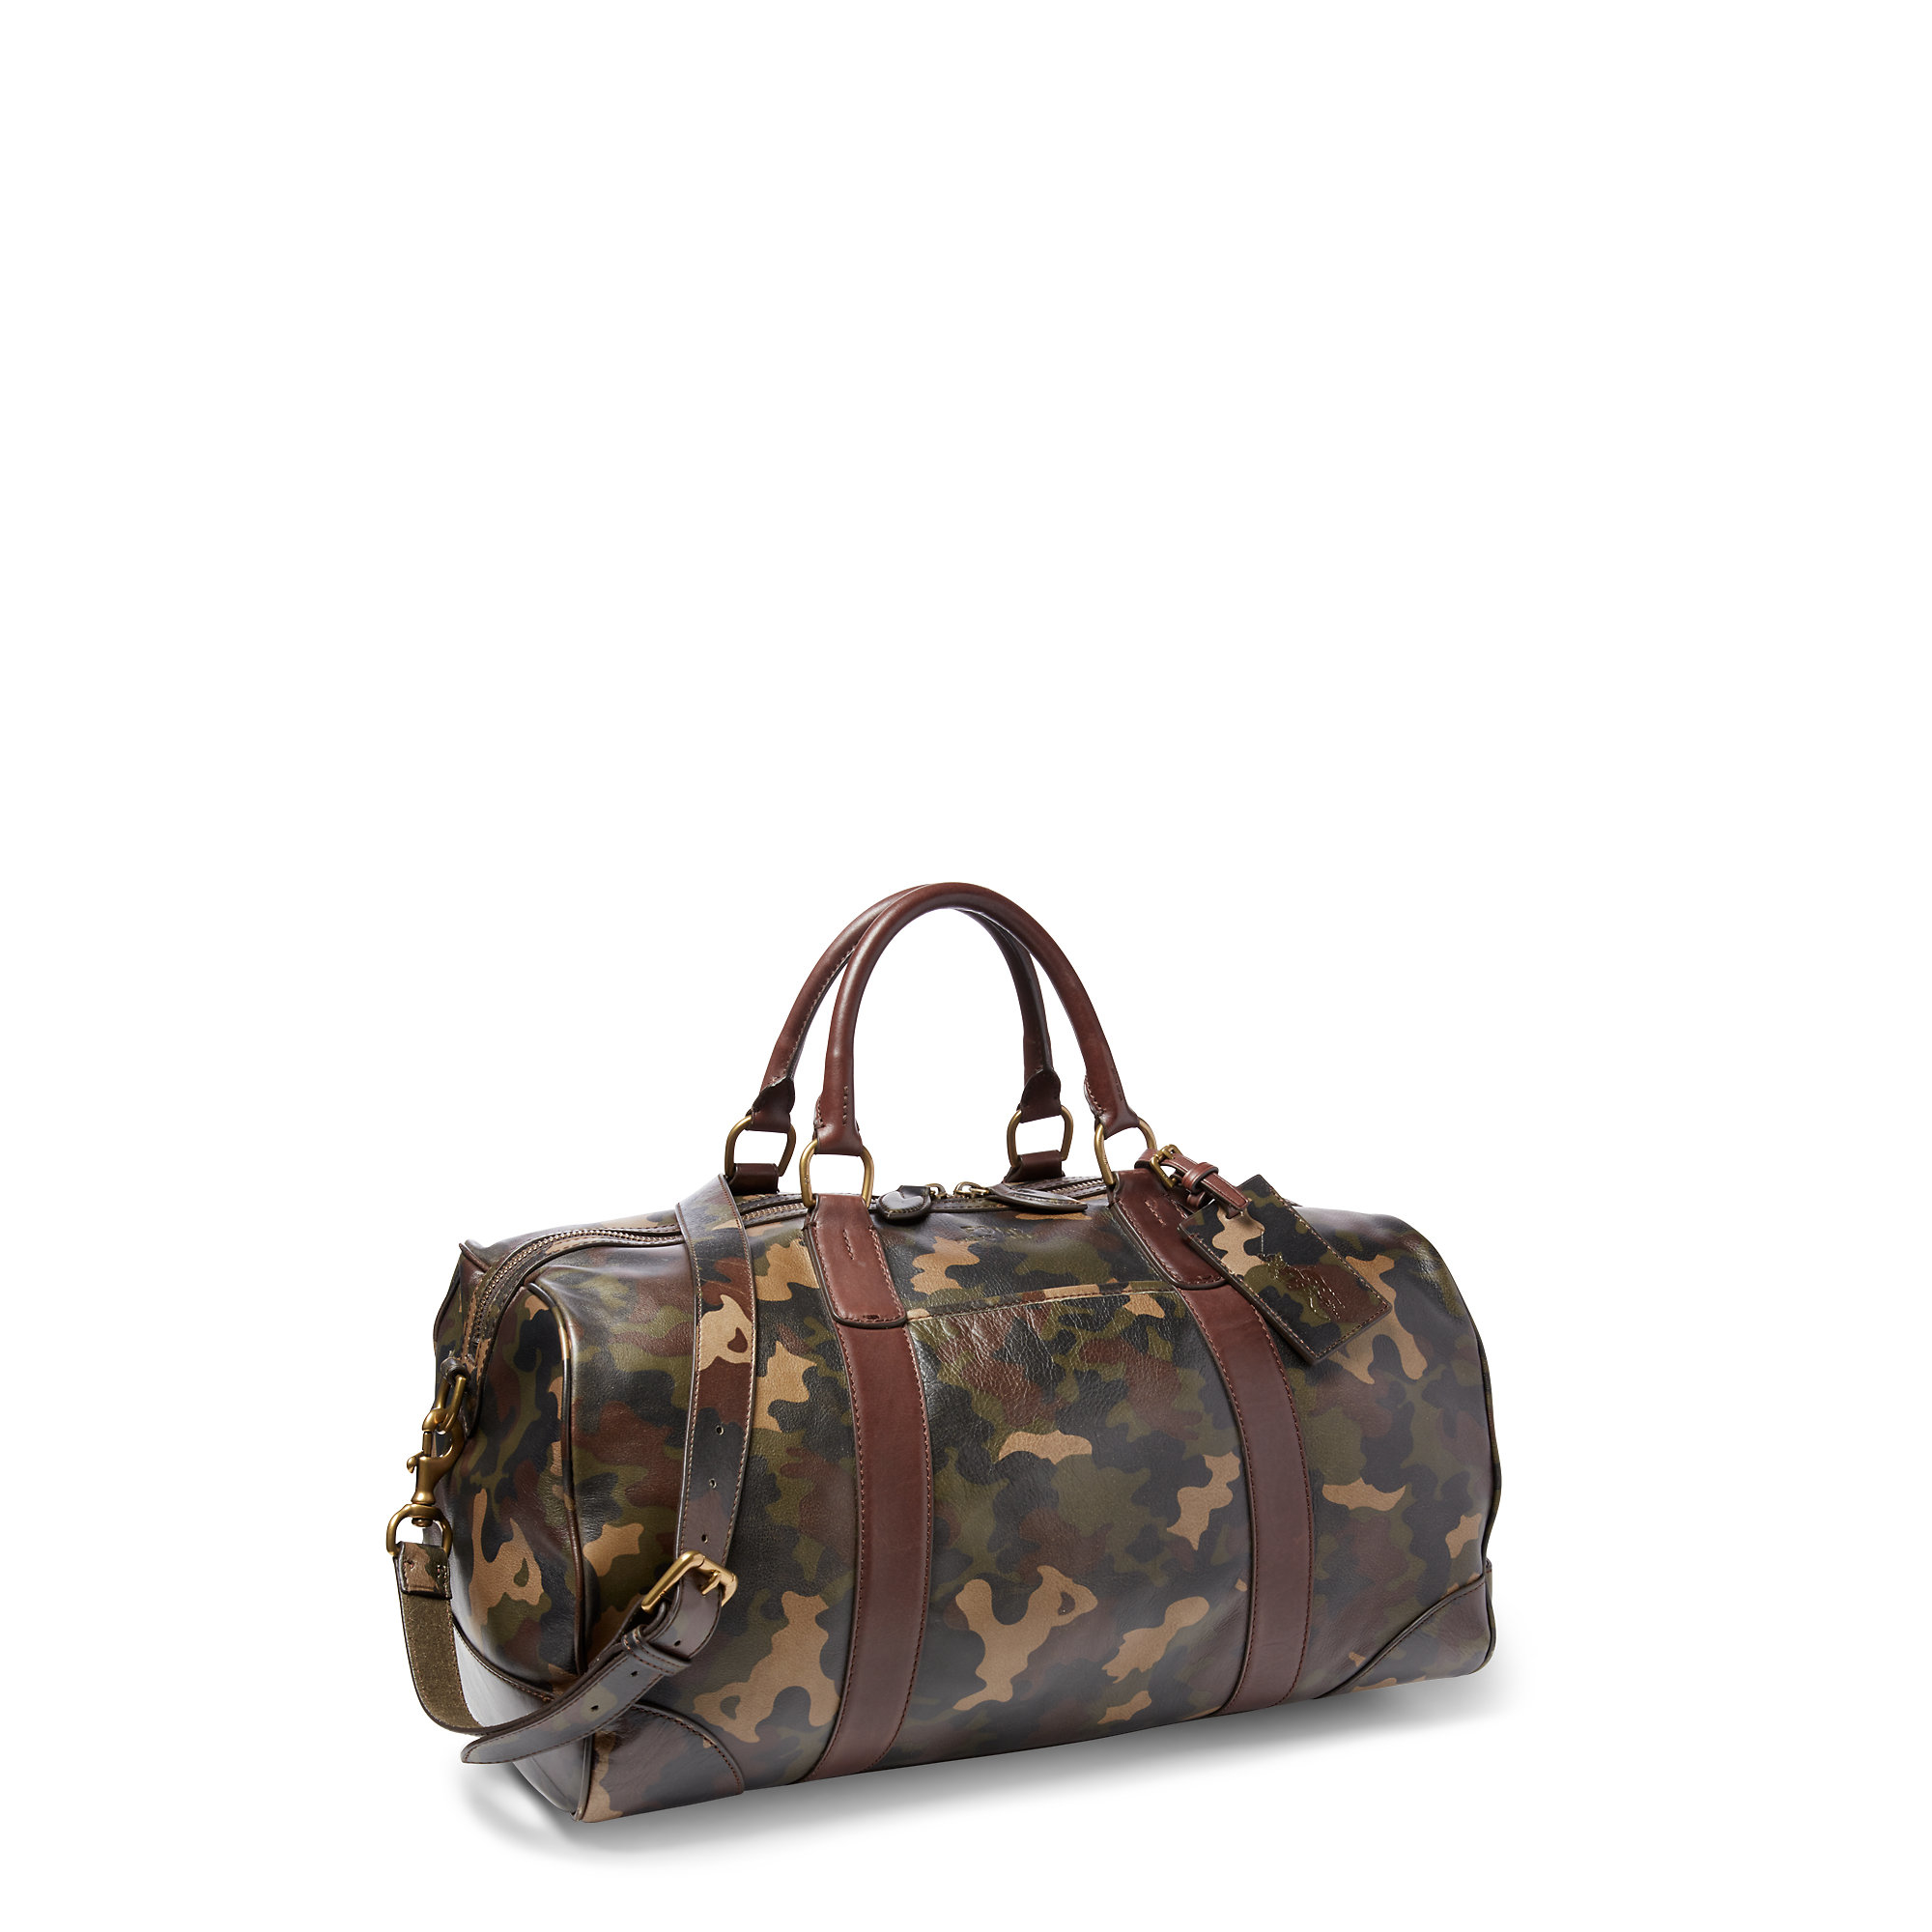 87077f751099 ... germany lyst polo ralph lauren camouflage leather duffel bag in gray  for men 6f1e7 13da5